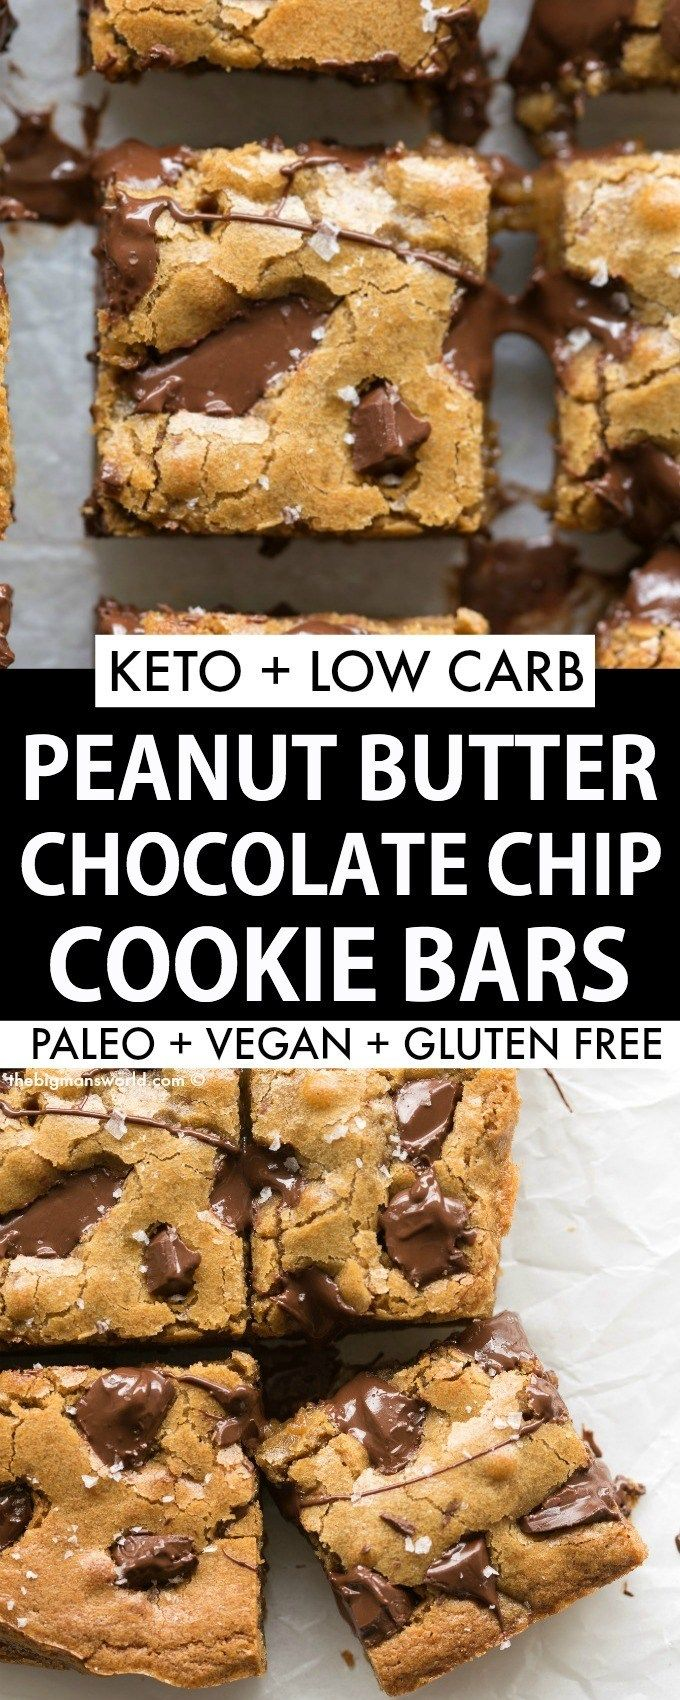 Keto Peanut Butter Chocolate Chip Cookie Bars are …